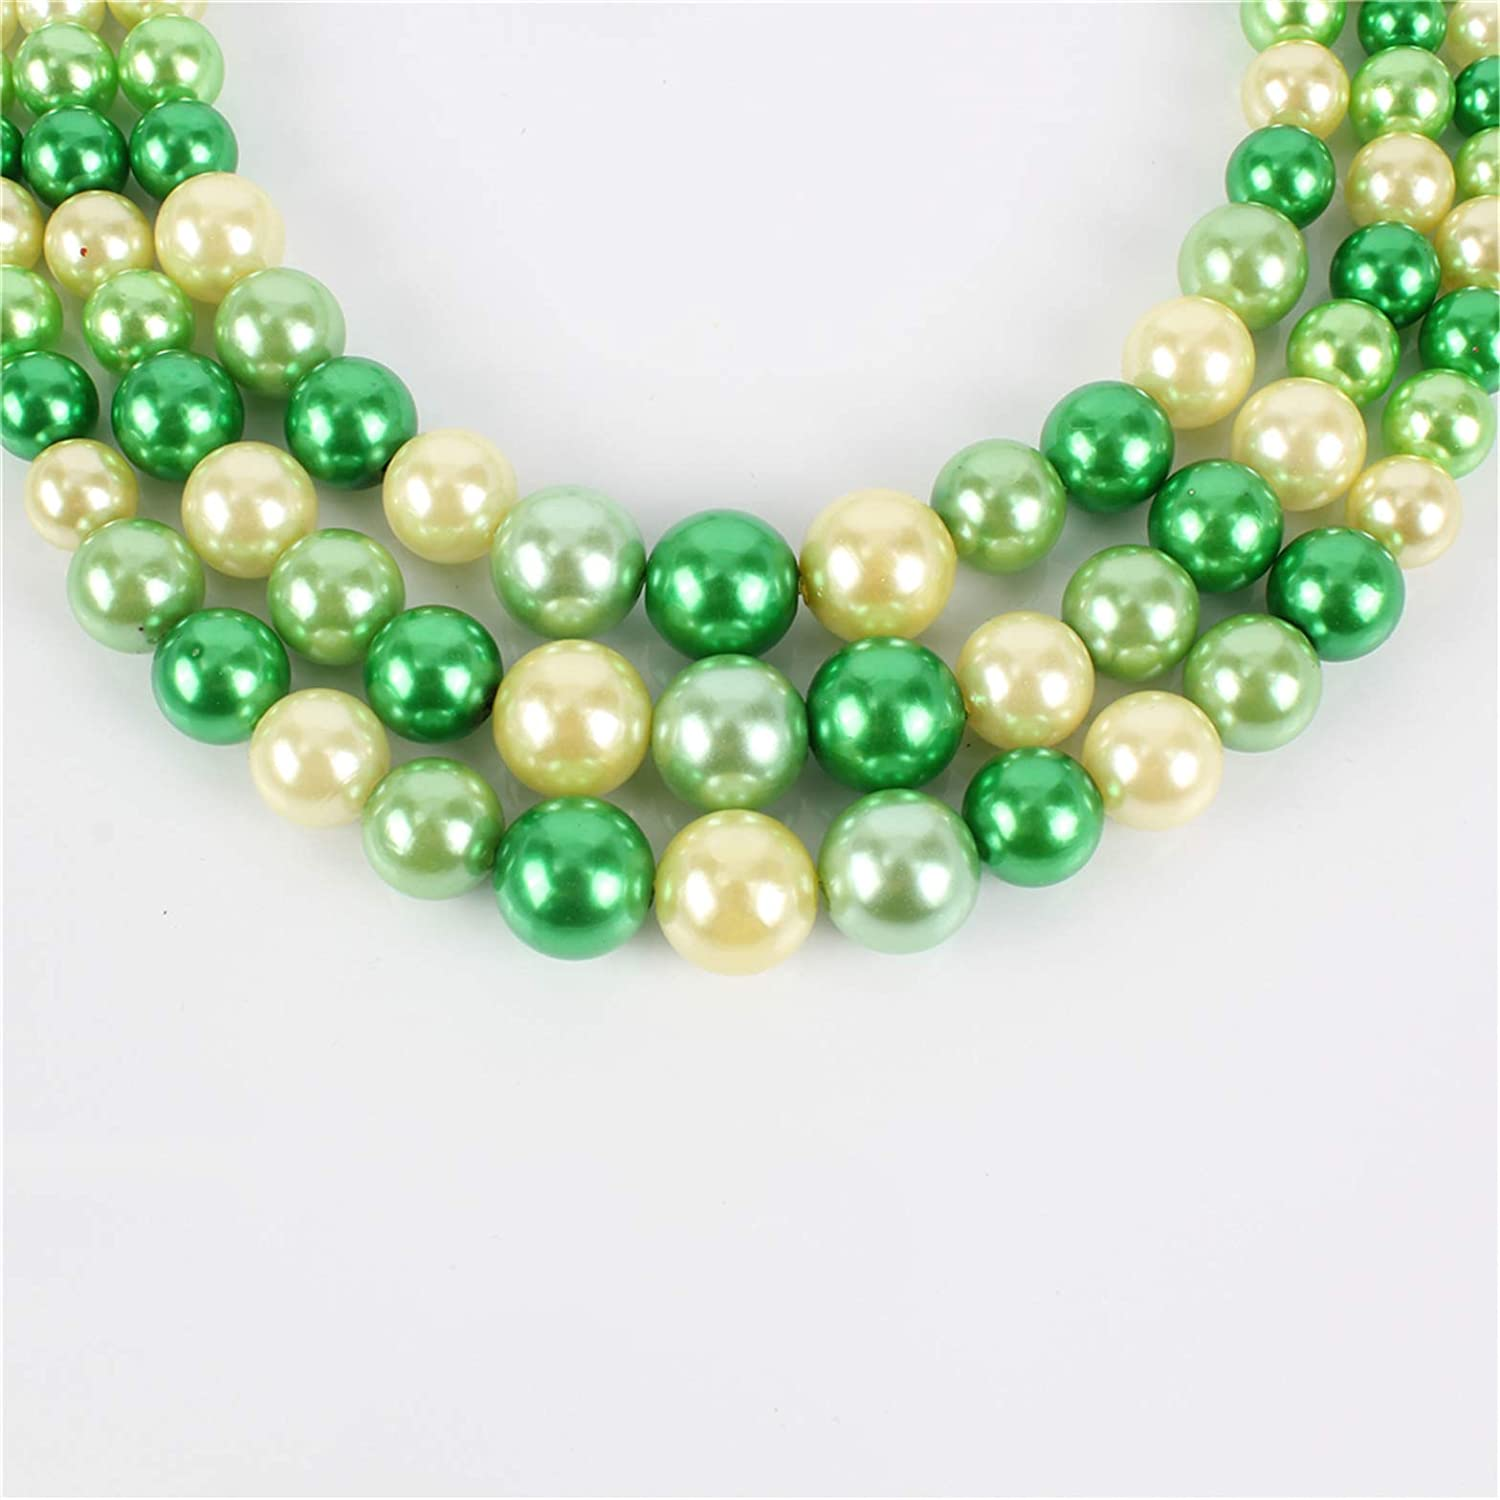 Ufraky Women's Mixed Color Simulated Faux Pearl Multi Strands Necklace Earrings Elastic Bracelet Gift Jewelry